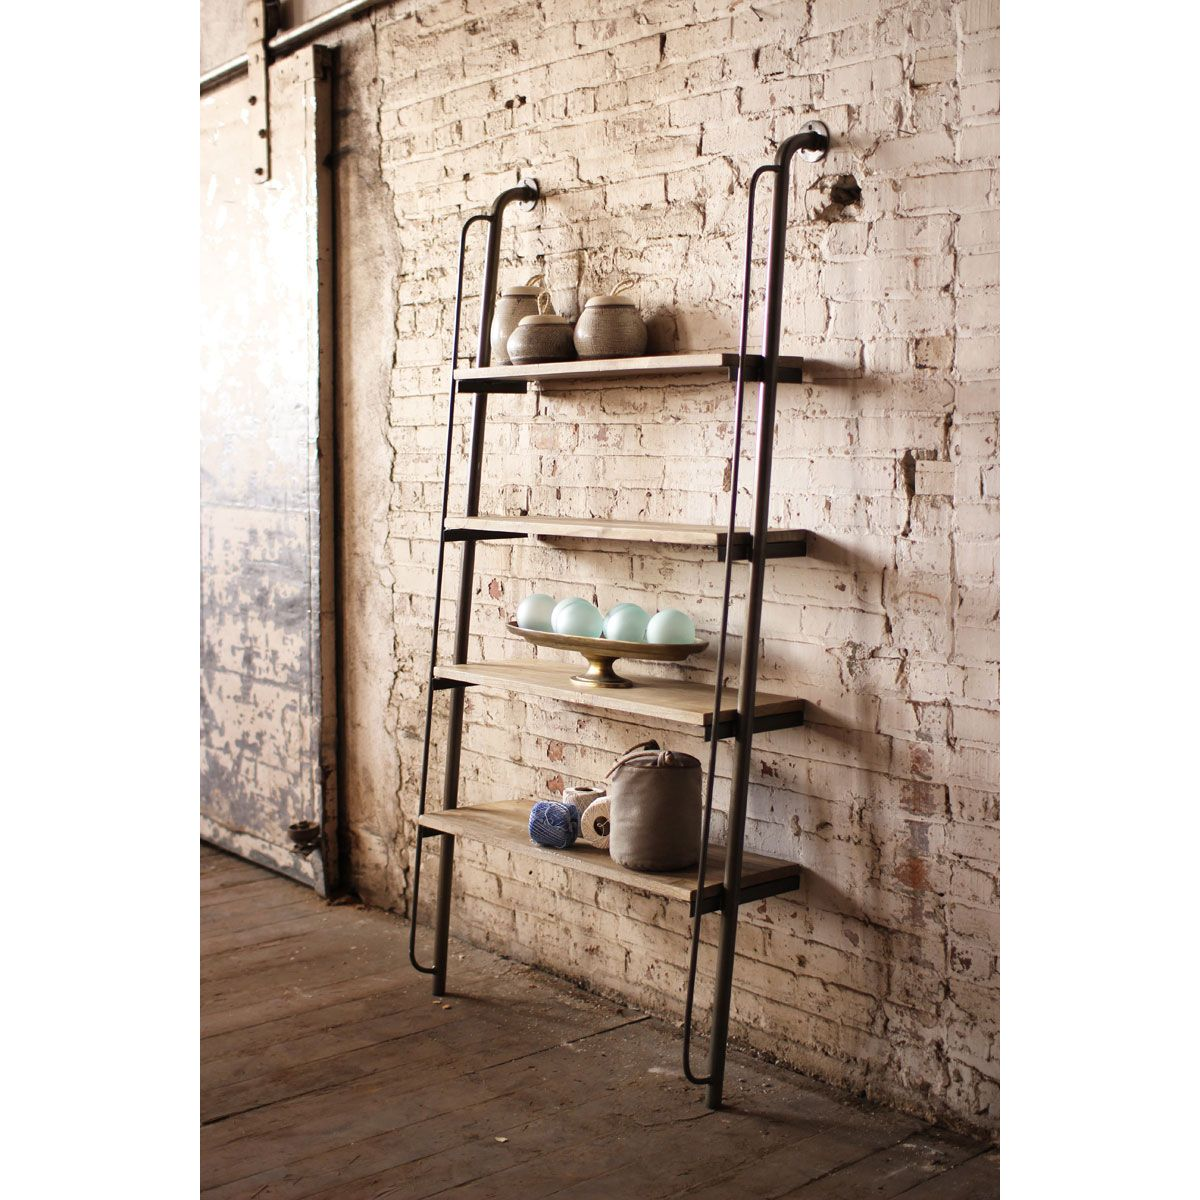 Delightful Metal And Wood Shelves Leaning Wall Shelving Unit With Skewed Iron Pipe  With A Wooden Plank Leaning On A Brick Wall With Design Four Board Of  Unique Awesome ... Design